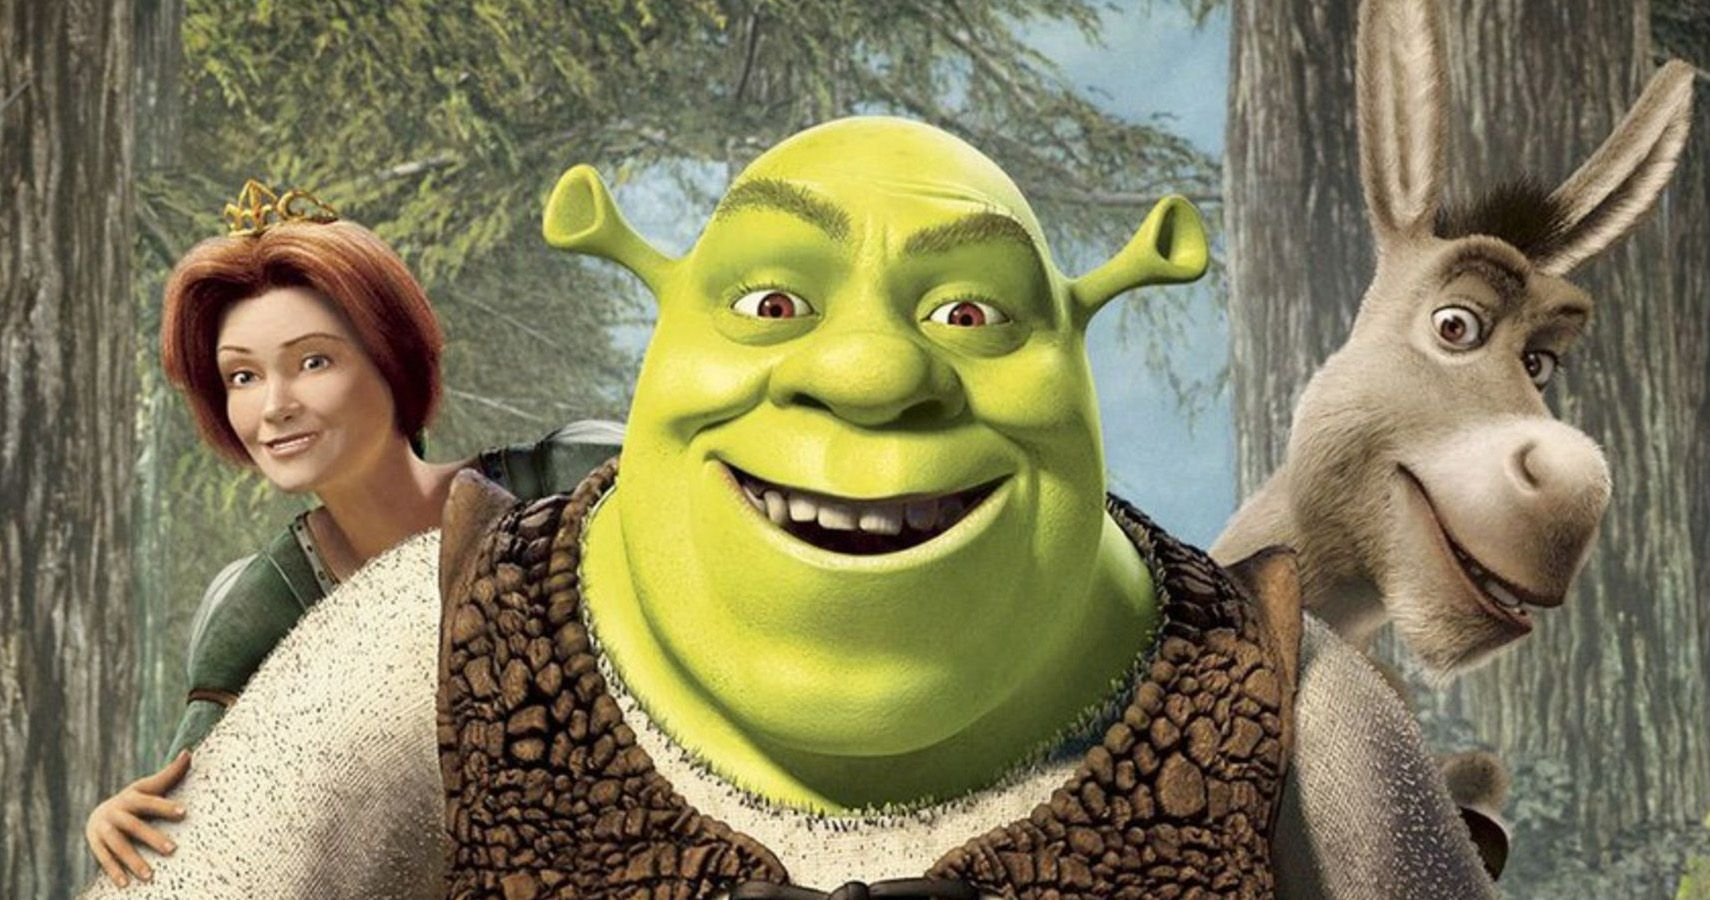 Every Shrek Movie Ranked From Worst To Best | Screen Rant